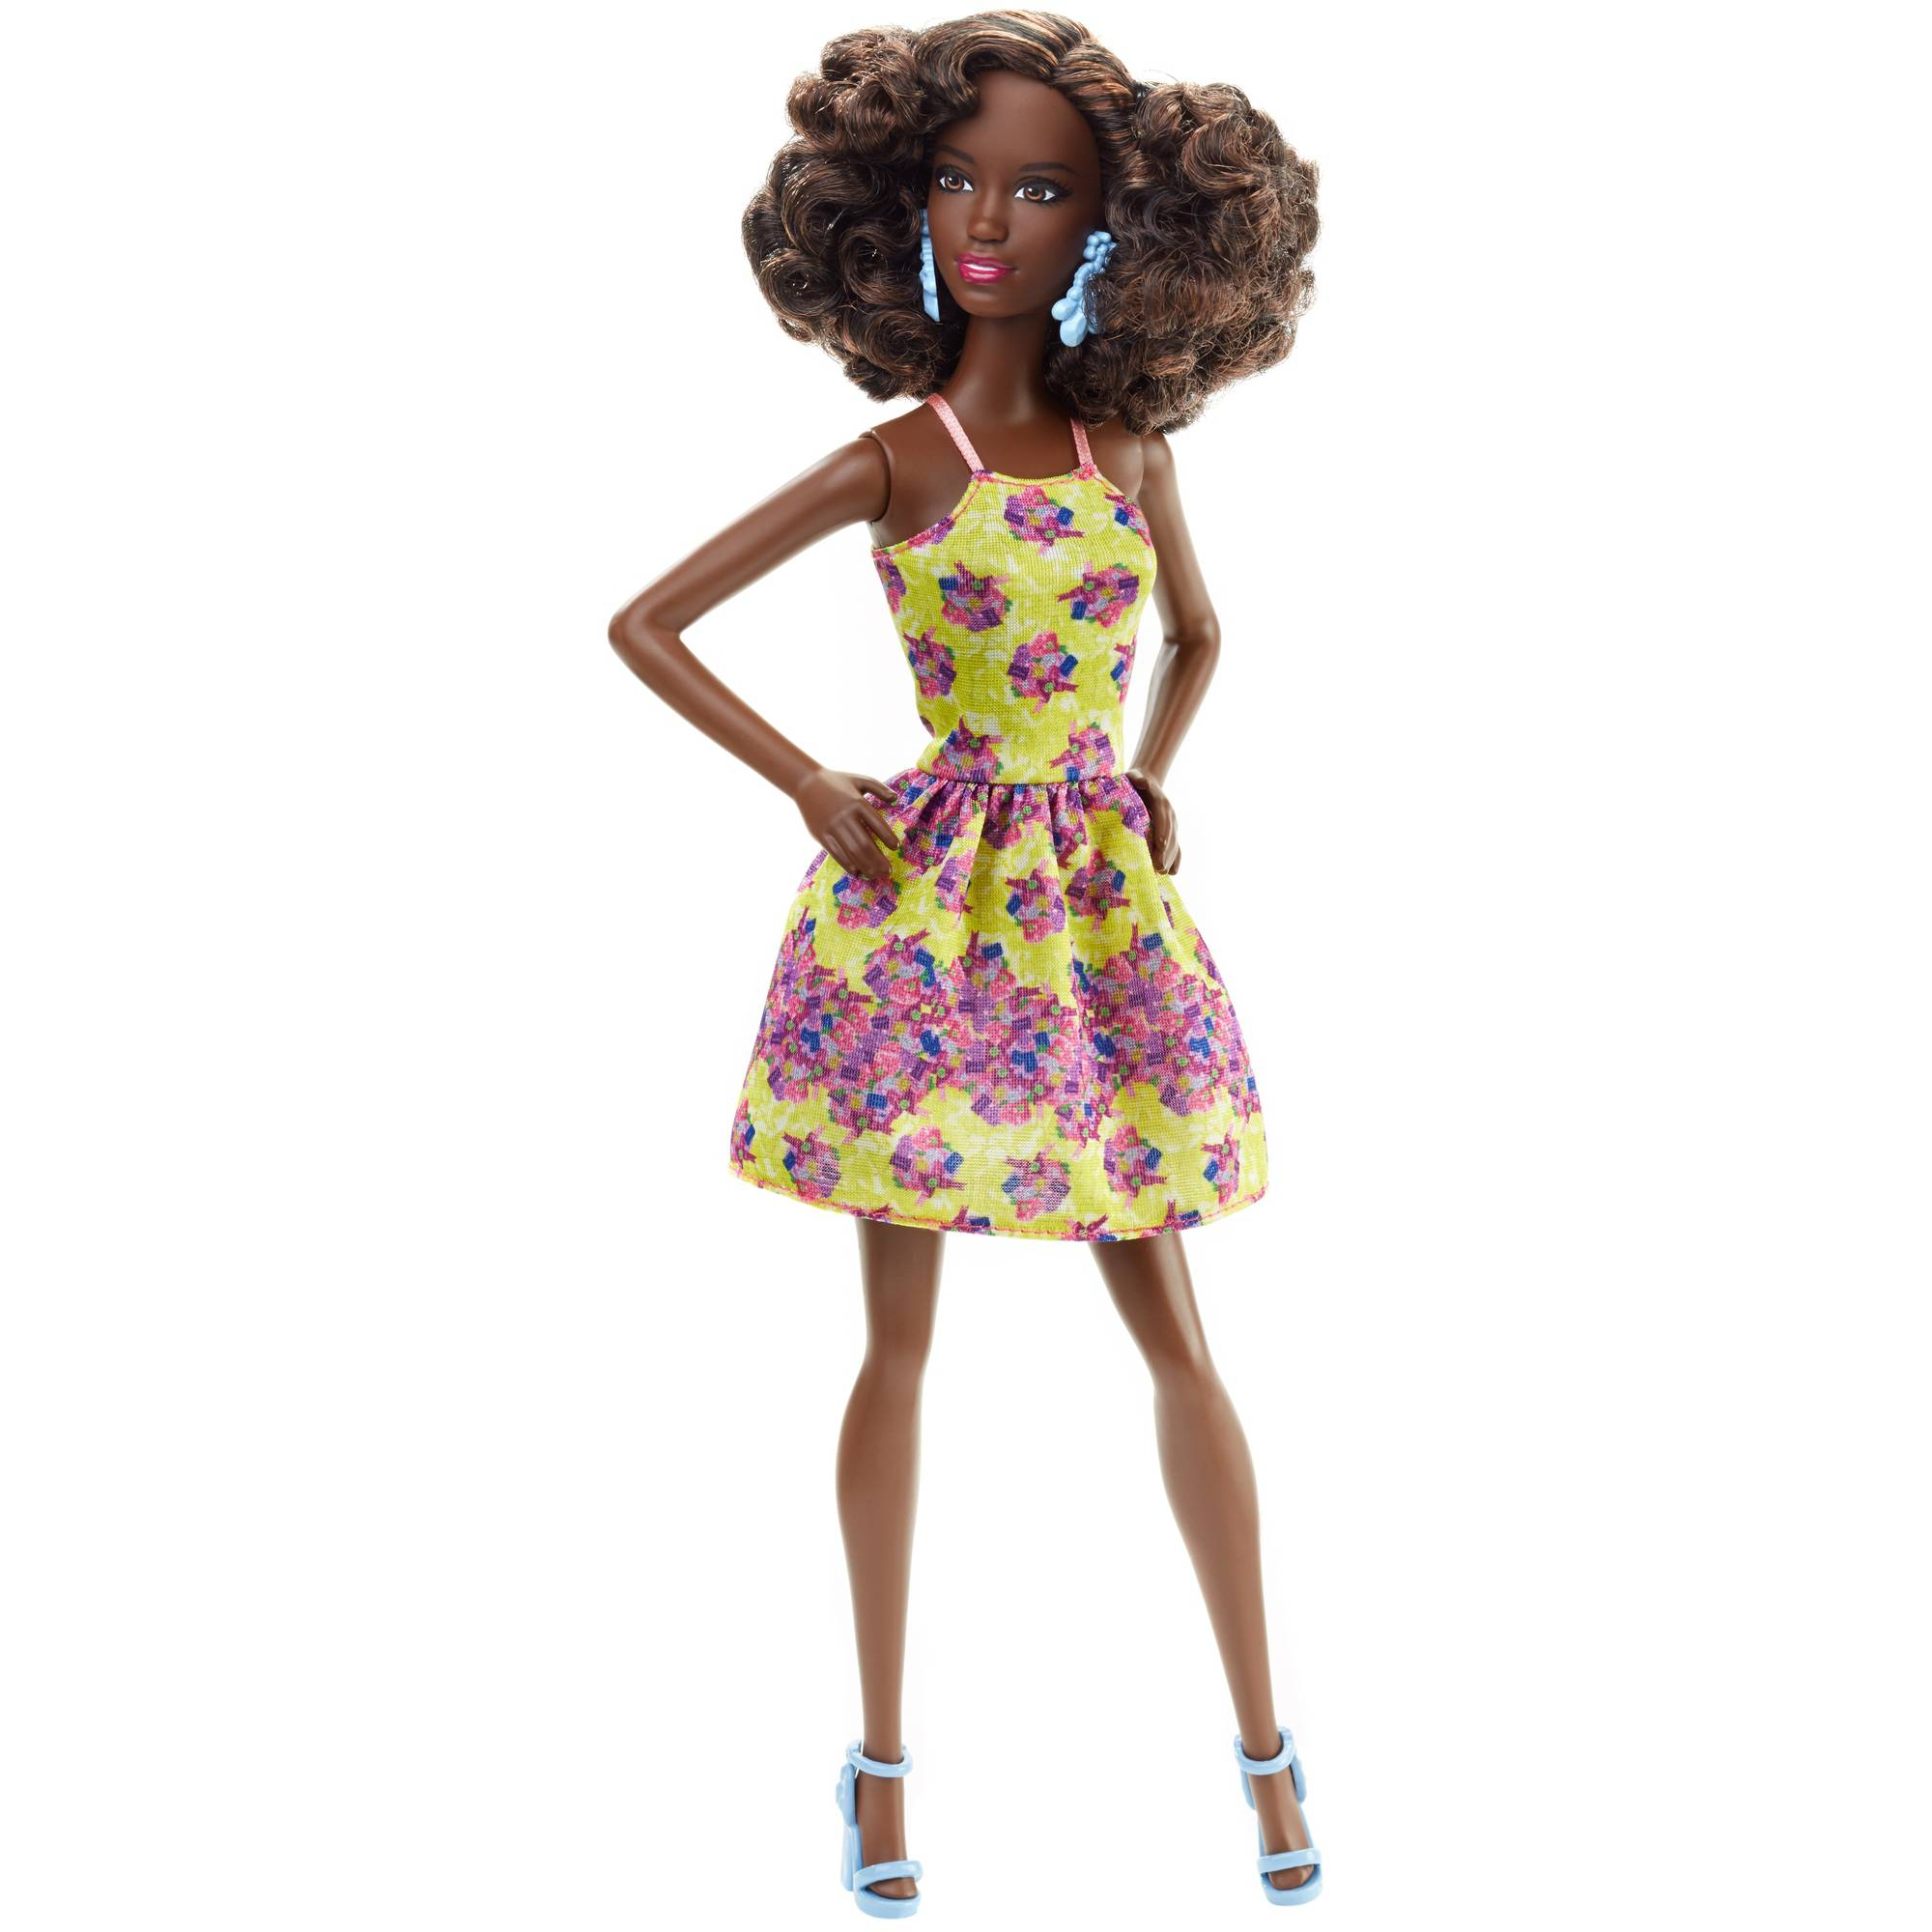 Barbie Fashionistas Fancy Flowers, Original Body Doll